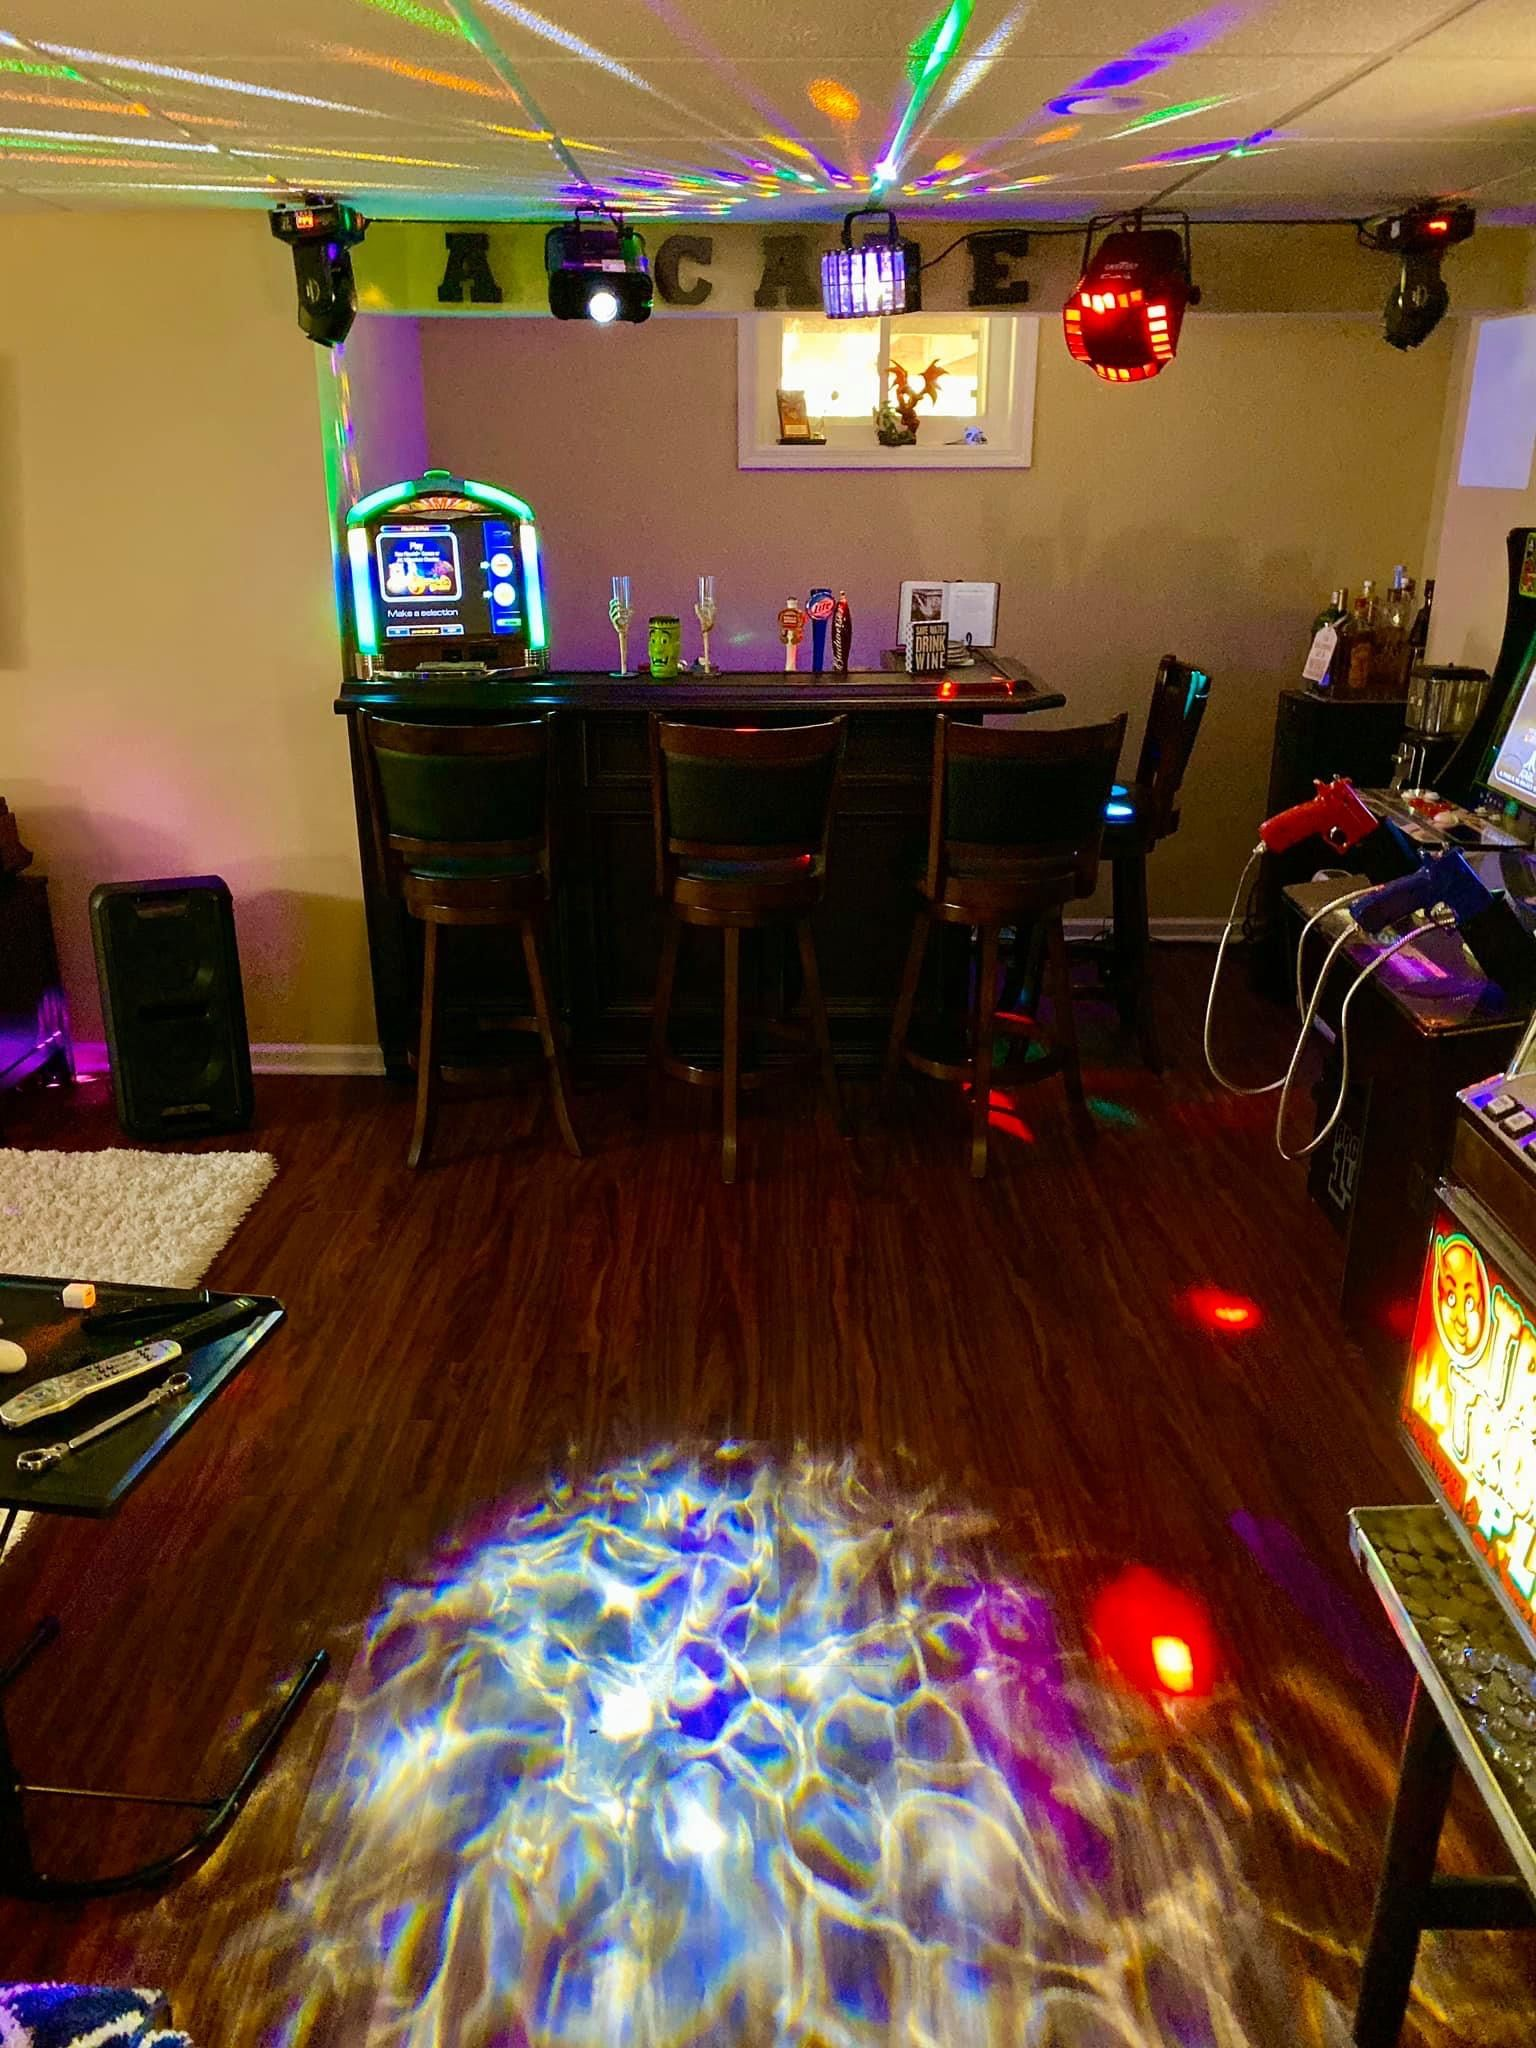 Game room image by R B on Game Room Ideas Poker table, Decor